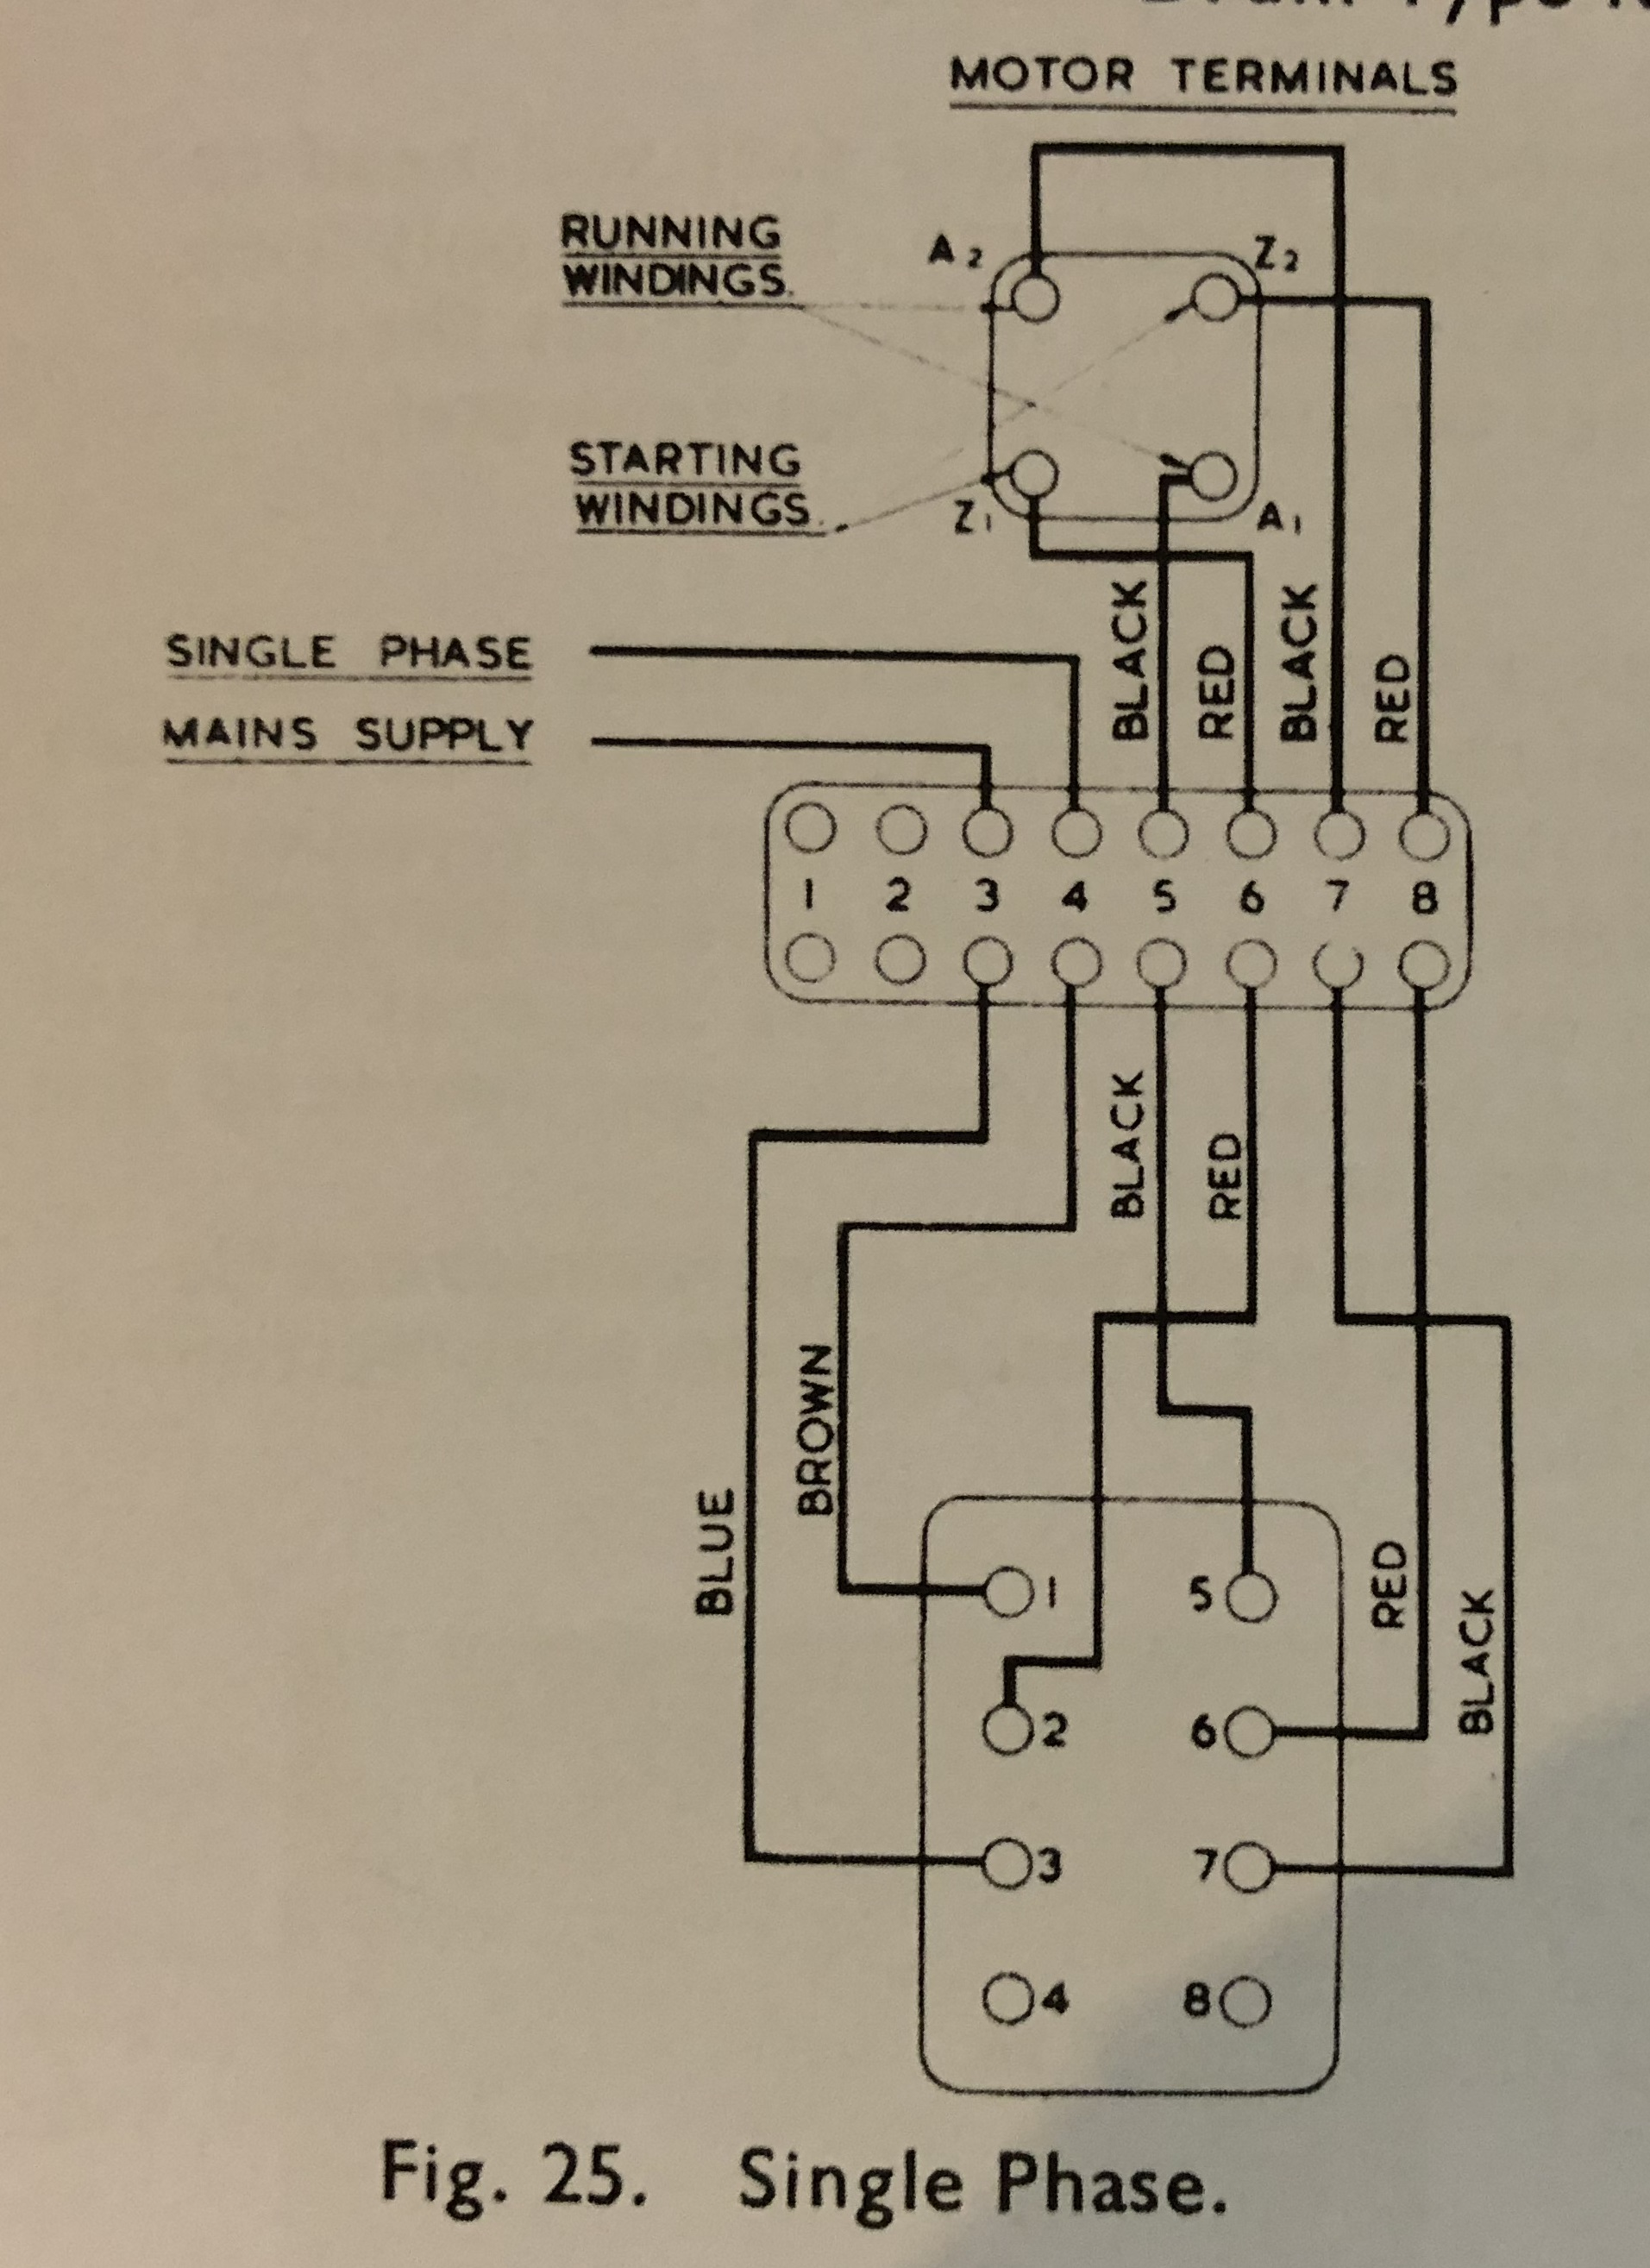 Dire Diagram For Dayton Relay Wiring Free Download 3 Phase Drum Switch Bridgeport I Would Like To Know How Wire A Control Corp